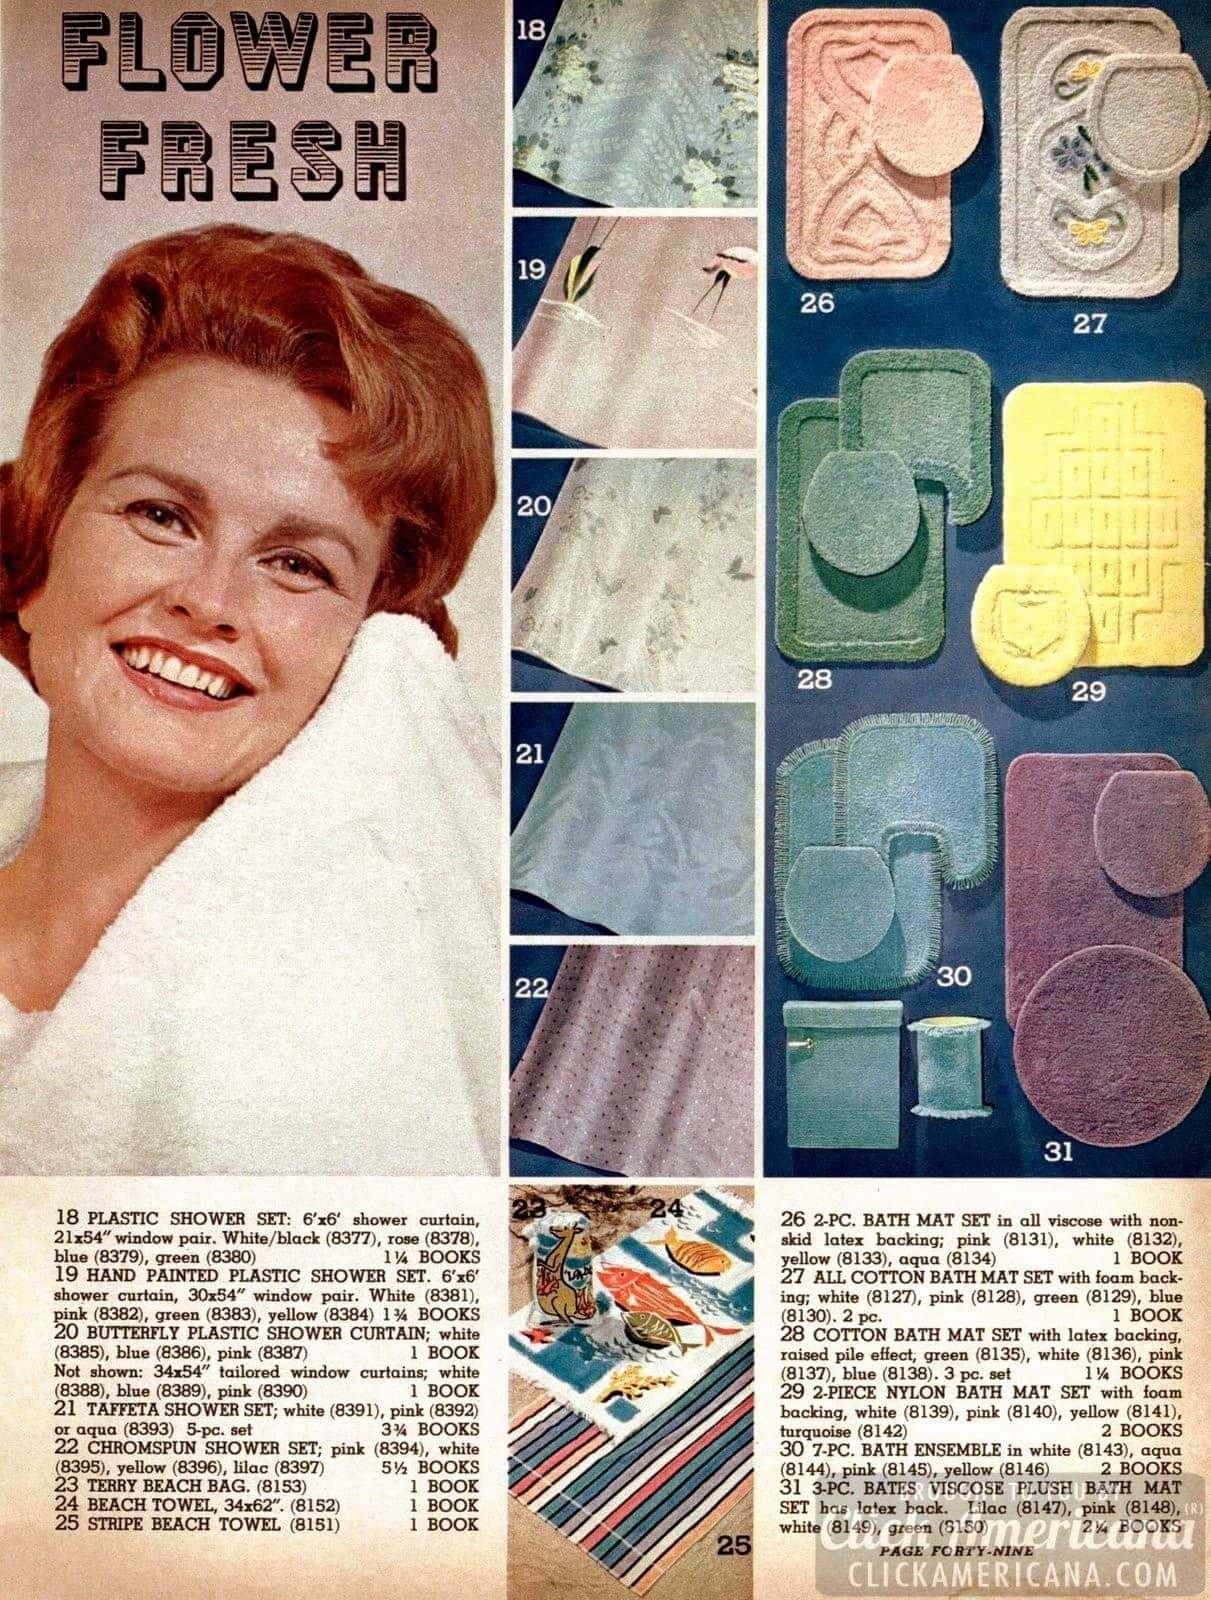 Vintage bathroom accessories for the home